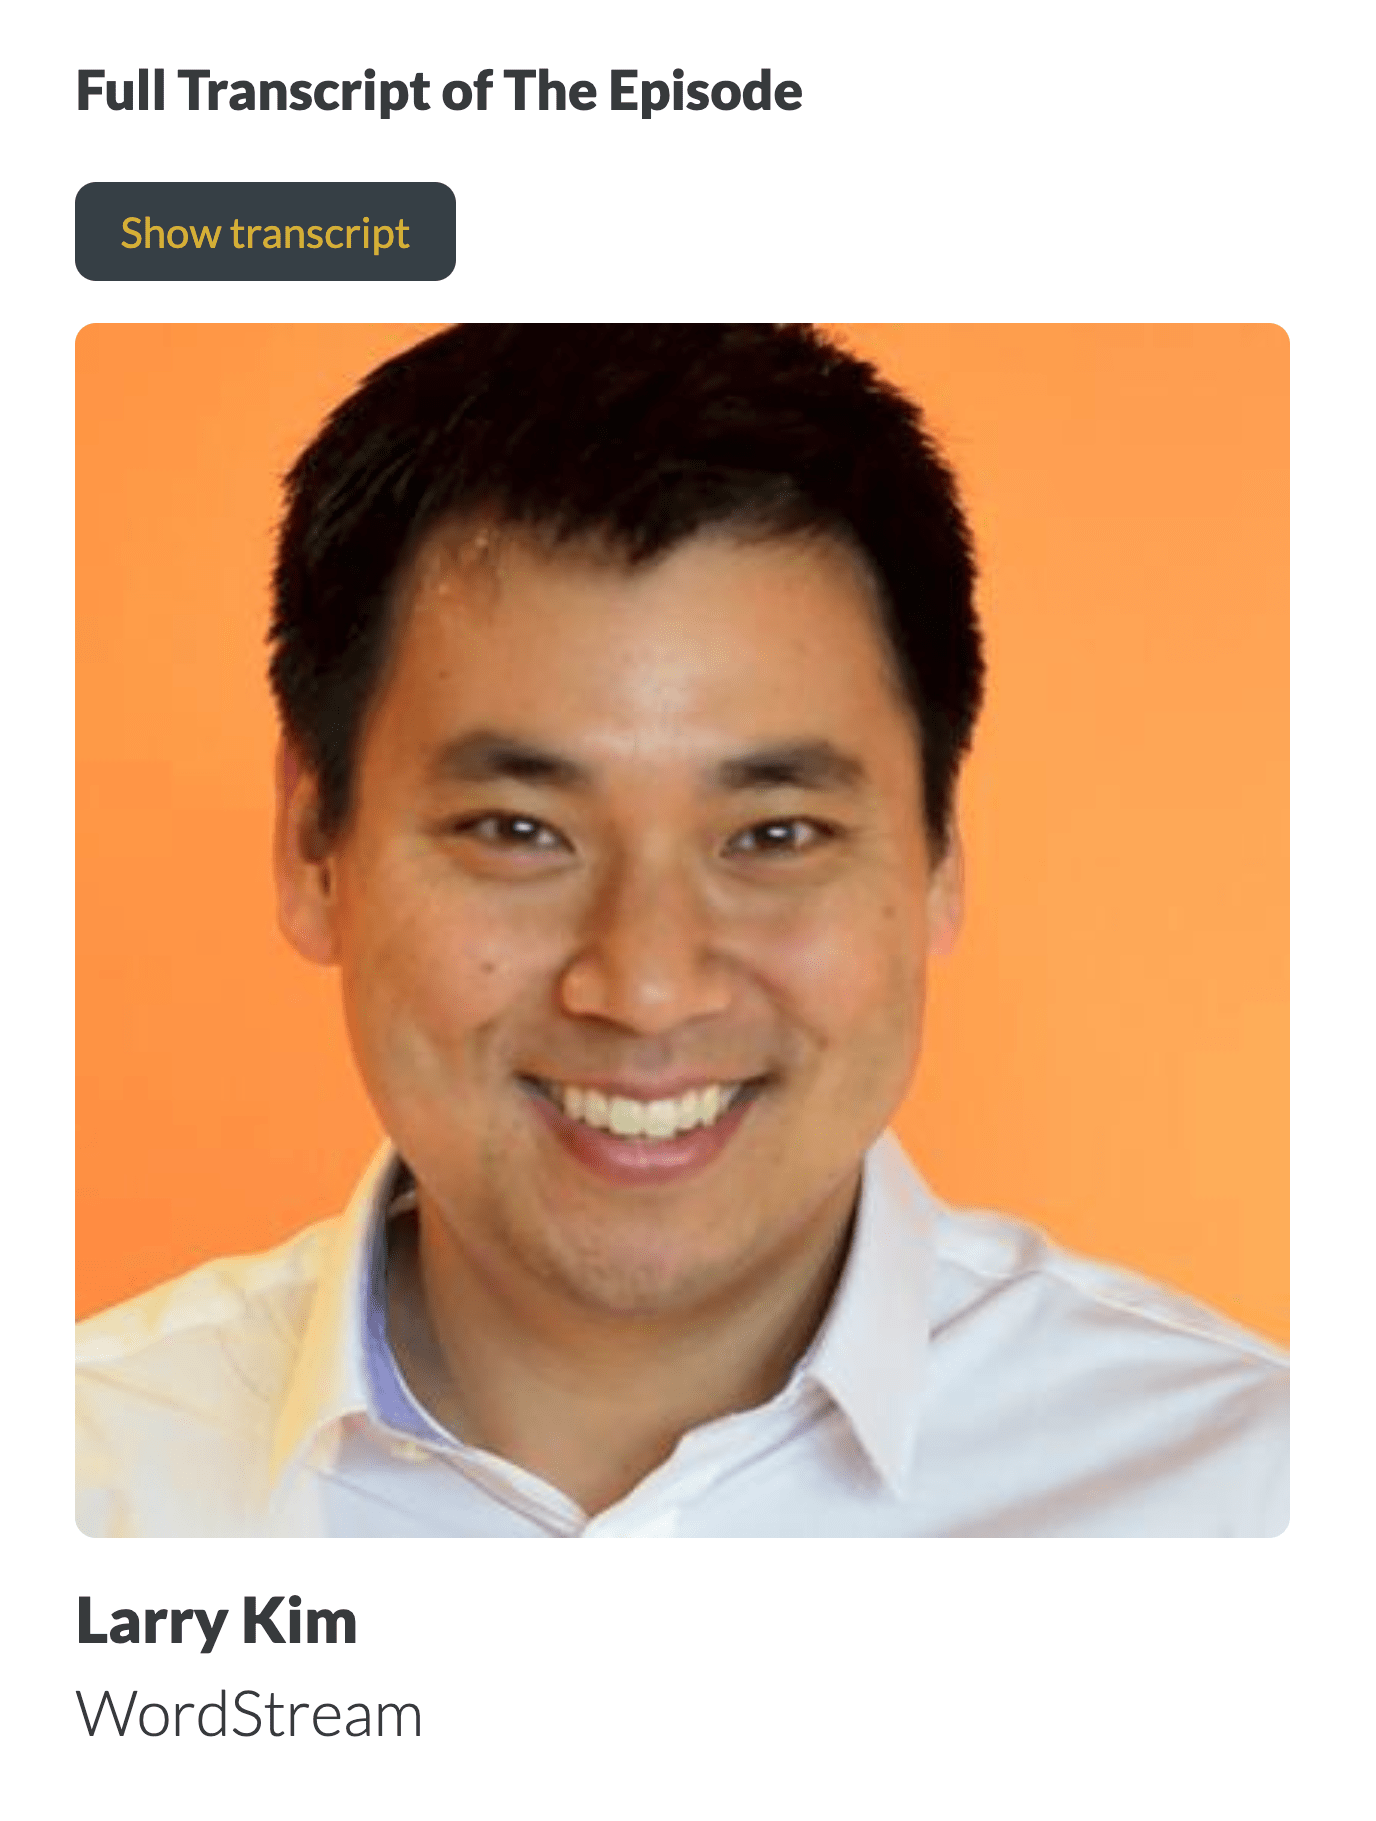 Larry Kim – Headshot From Show Notes